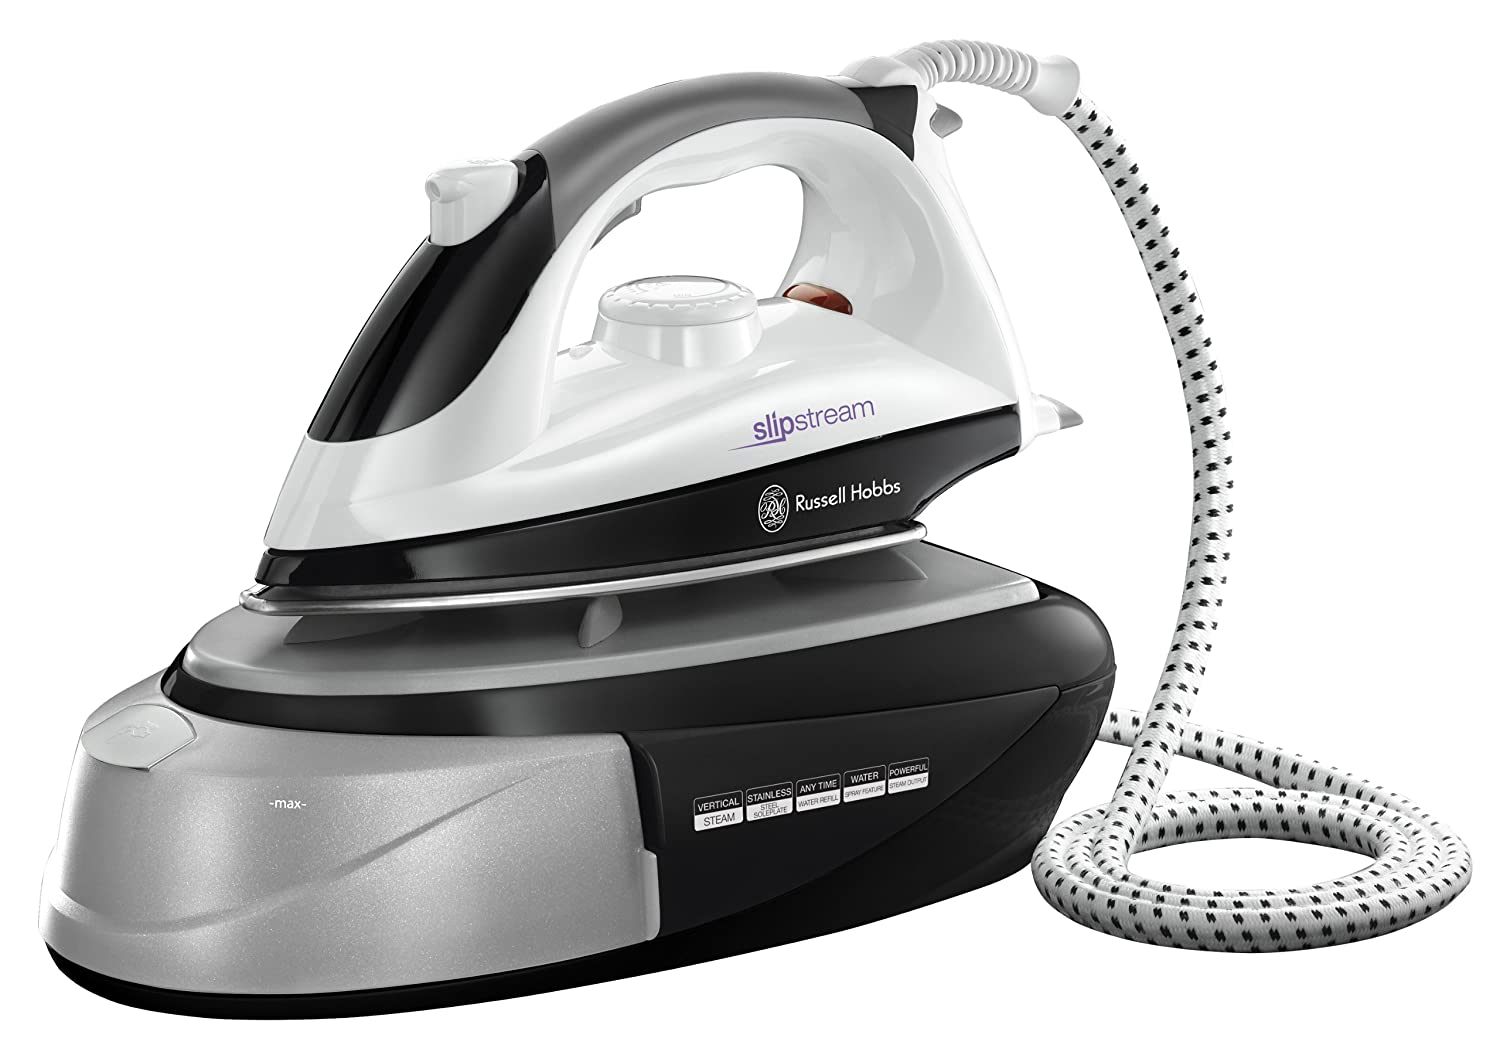 top 10 best russell hobbs steam generator irons 2018 2020. Black Bedroom Furniture Sets. Home Design Ideas